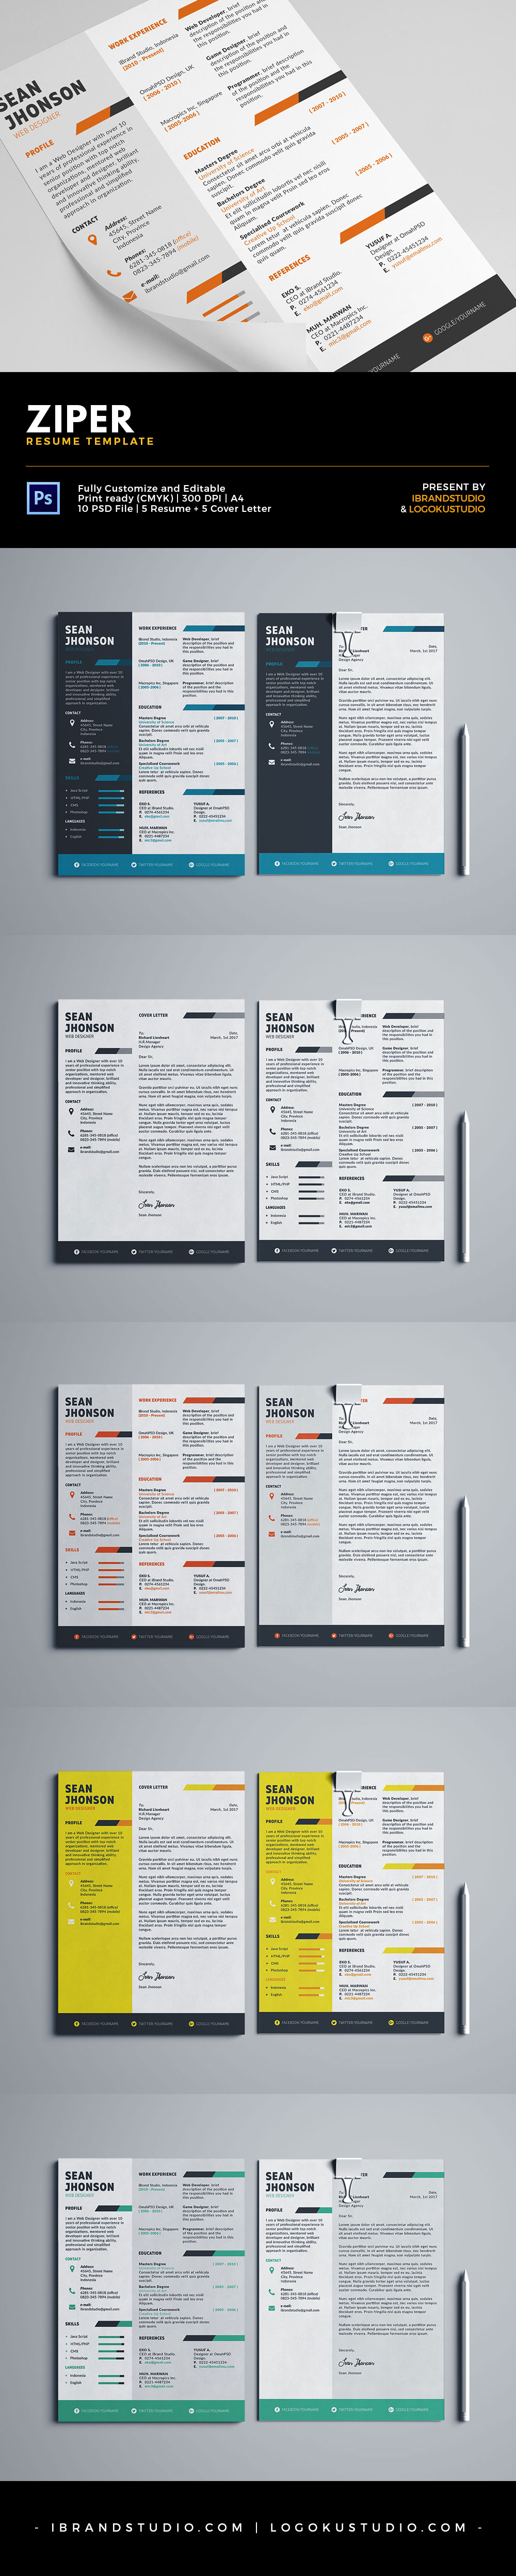 Free Ziper Resume Template And Cover Letter  Styles Psd